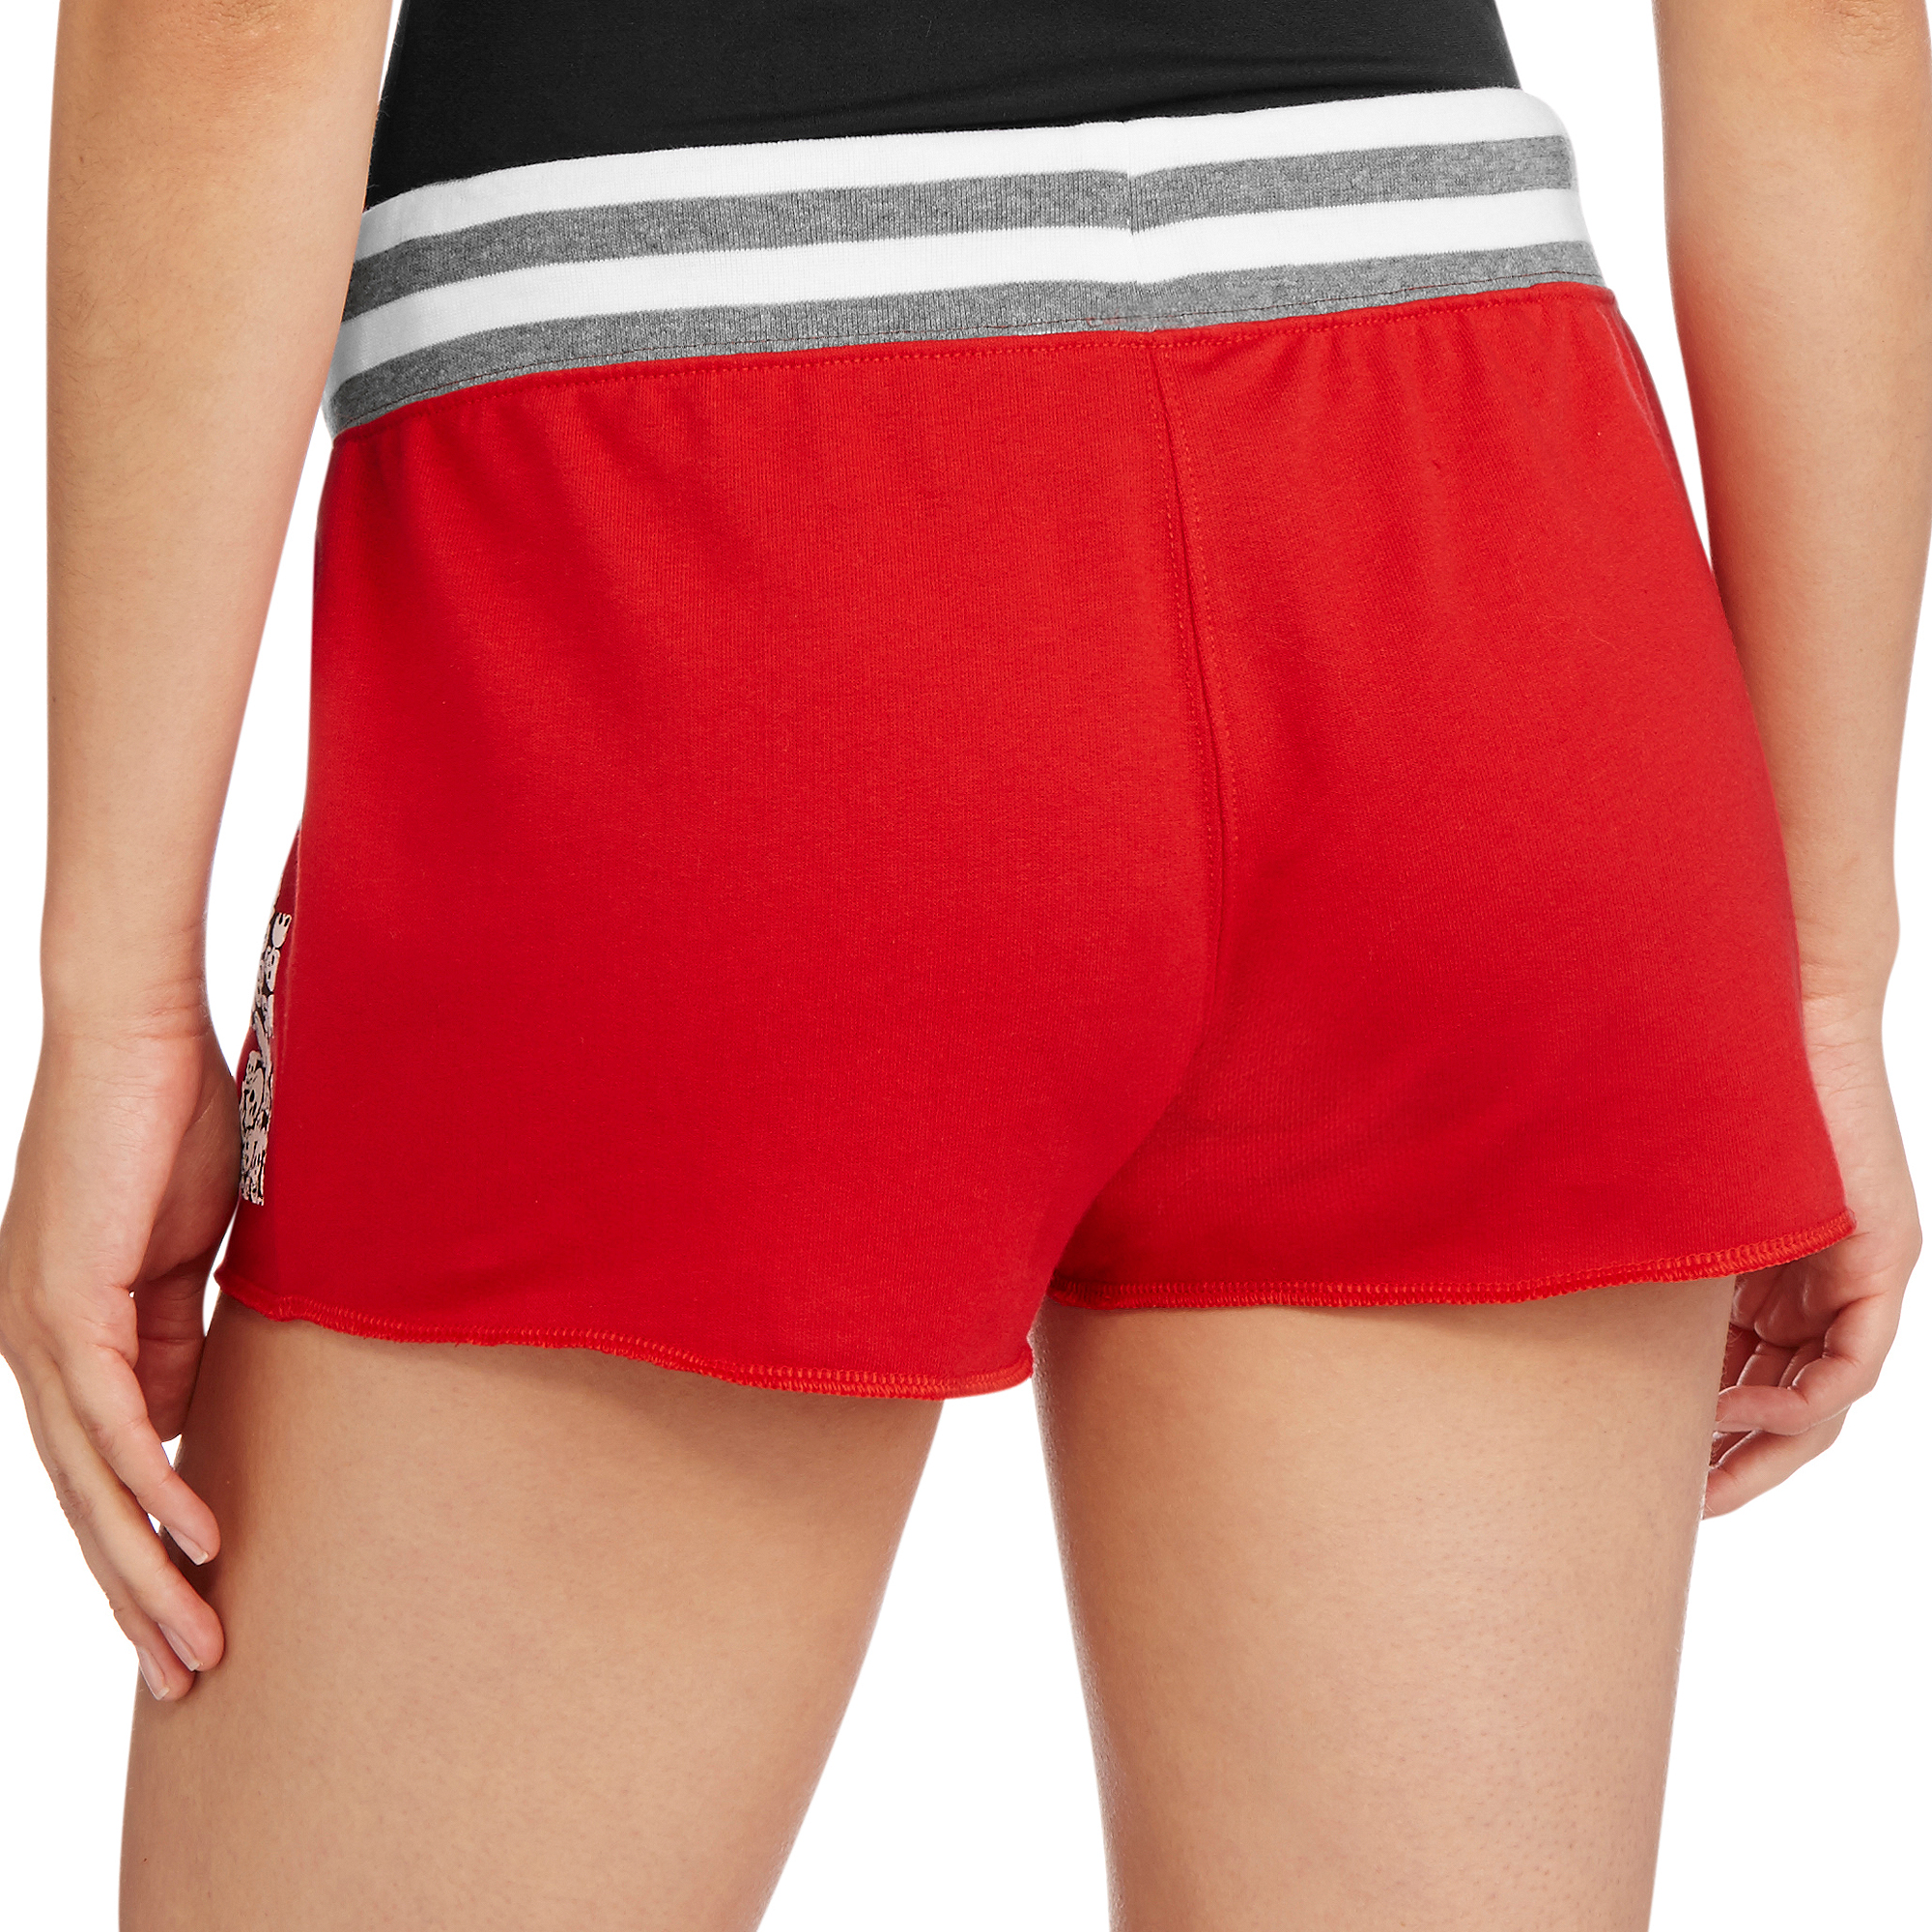 Find great deals on eBay for walmart shorts. Shop with confidence.